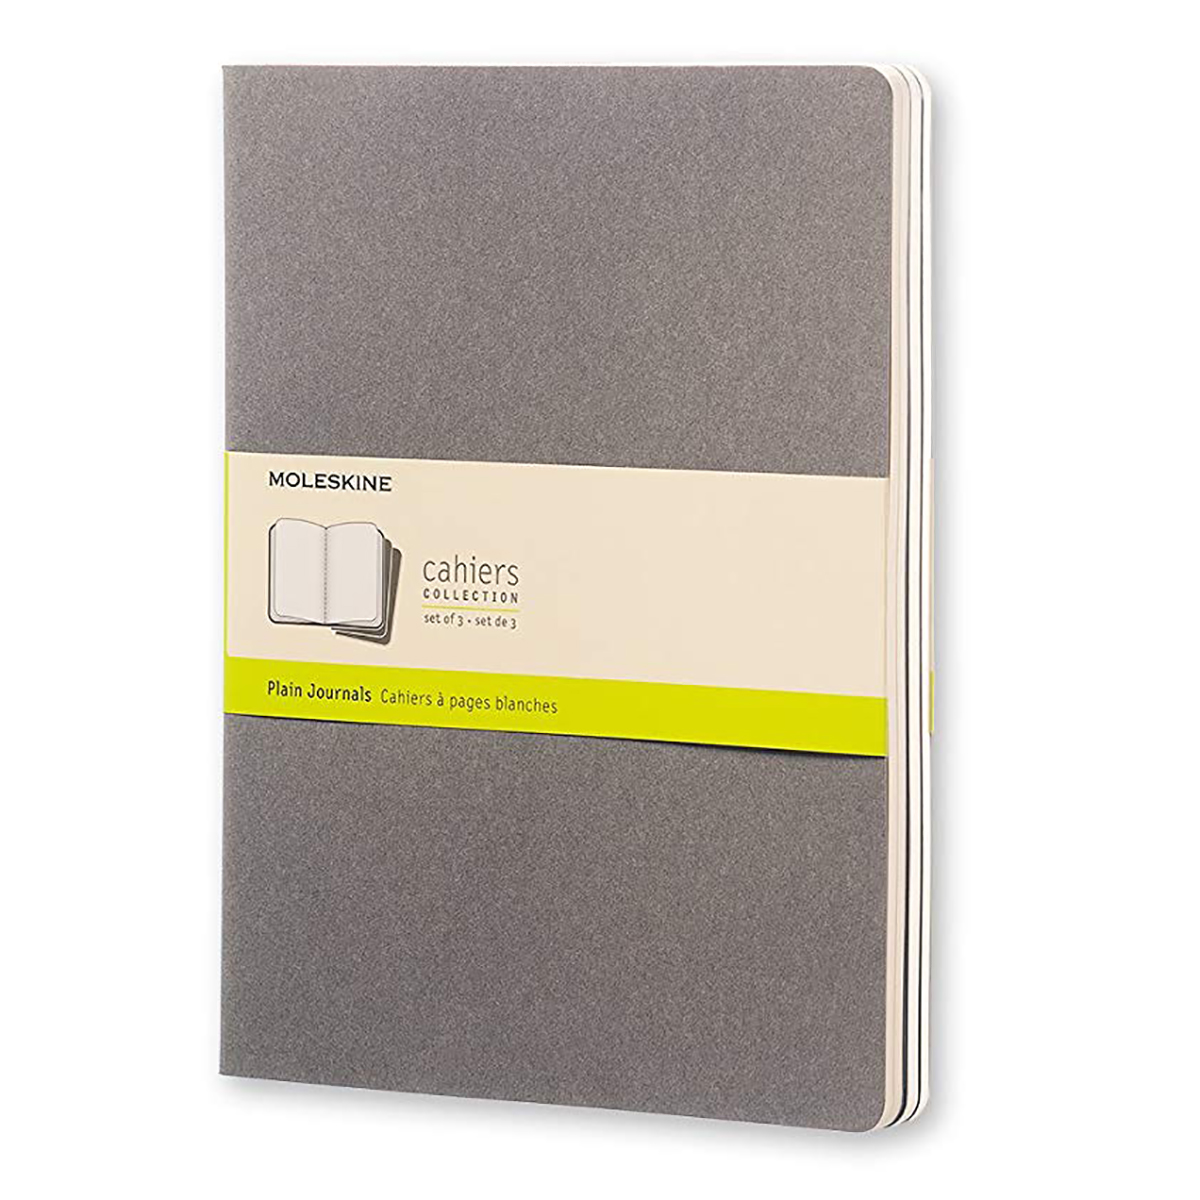 "Moleskine Cahier Soft Cover Journal 7.5x9.75"" - Cheap. Simple. Small. These things are ideal daily sketchbooks, and I don't need to worry about filling them with crappy drawings. Markers bleed like crazy, so use a piece of scrap cardstock under the page if using markers."